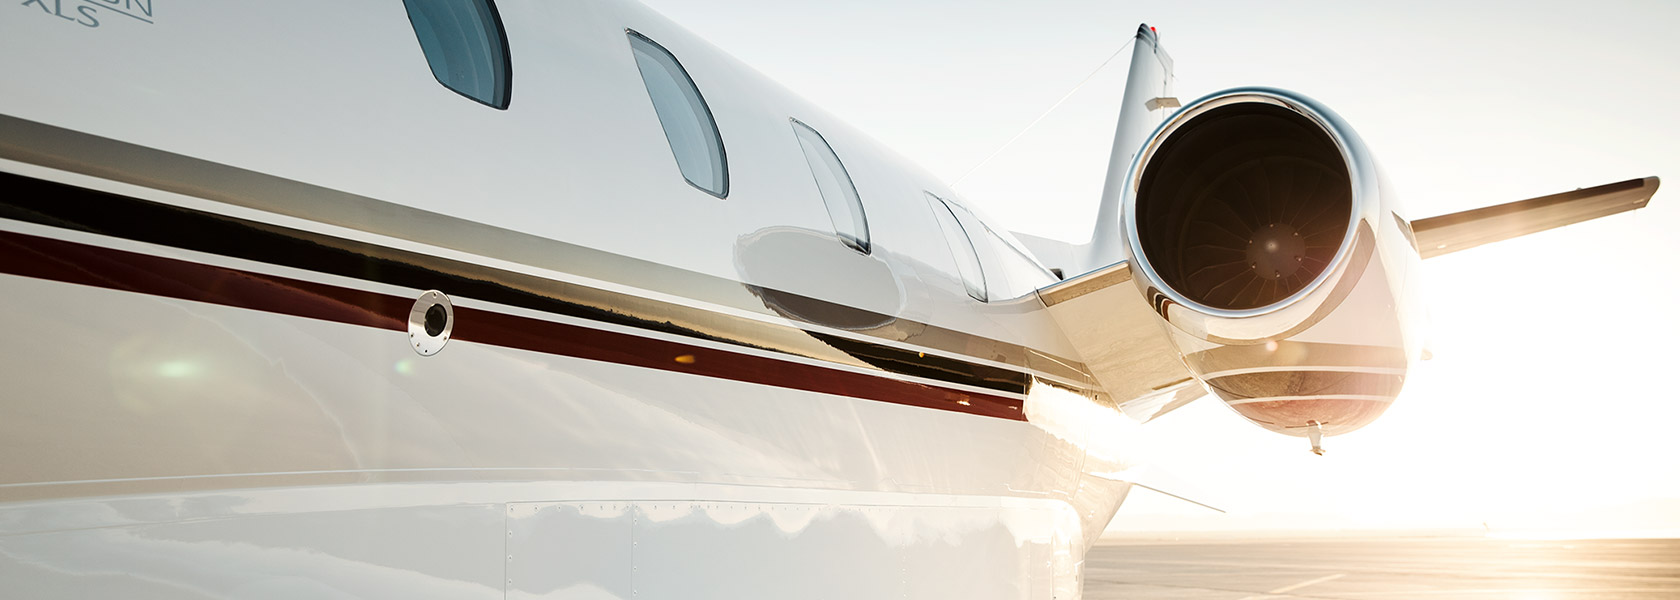 airline vesrus business aviation